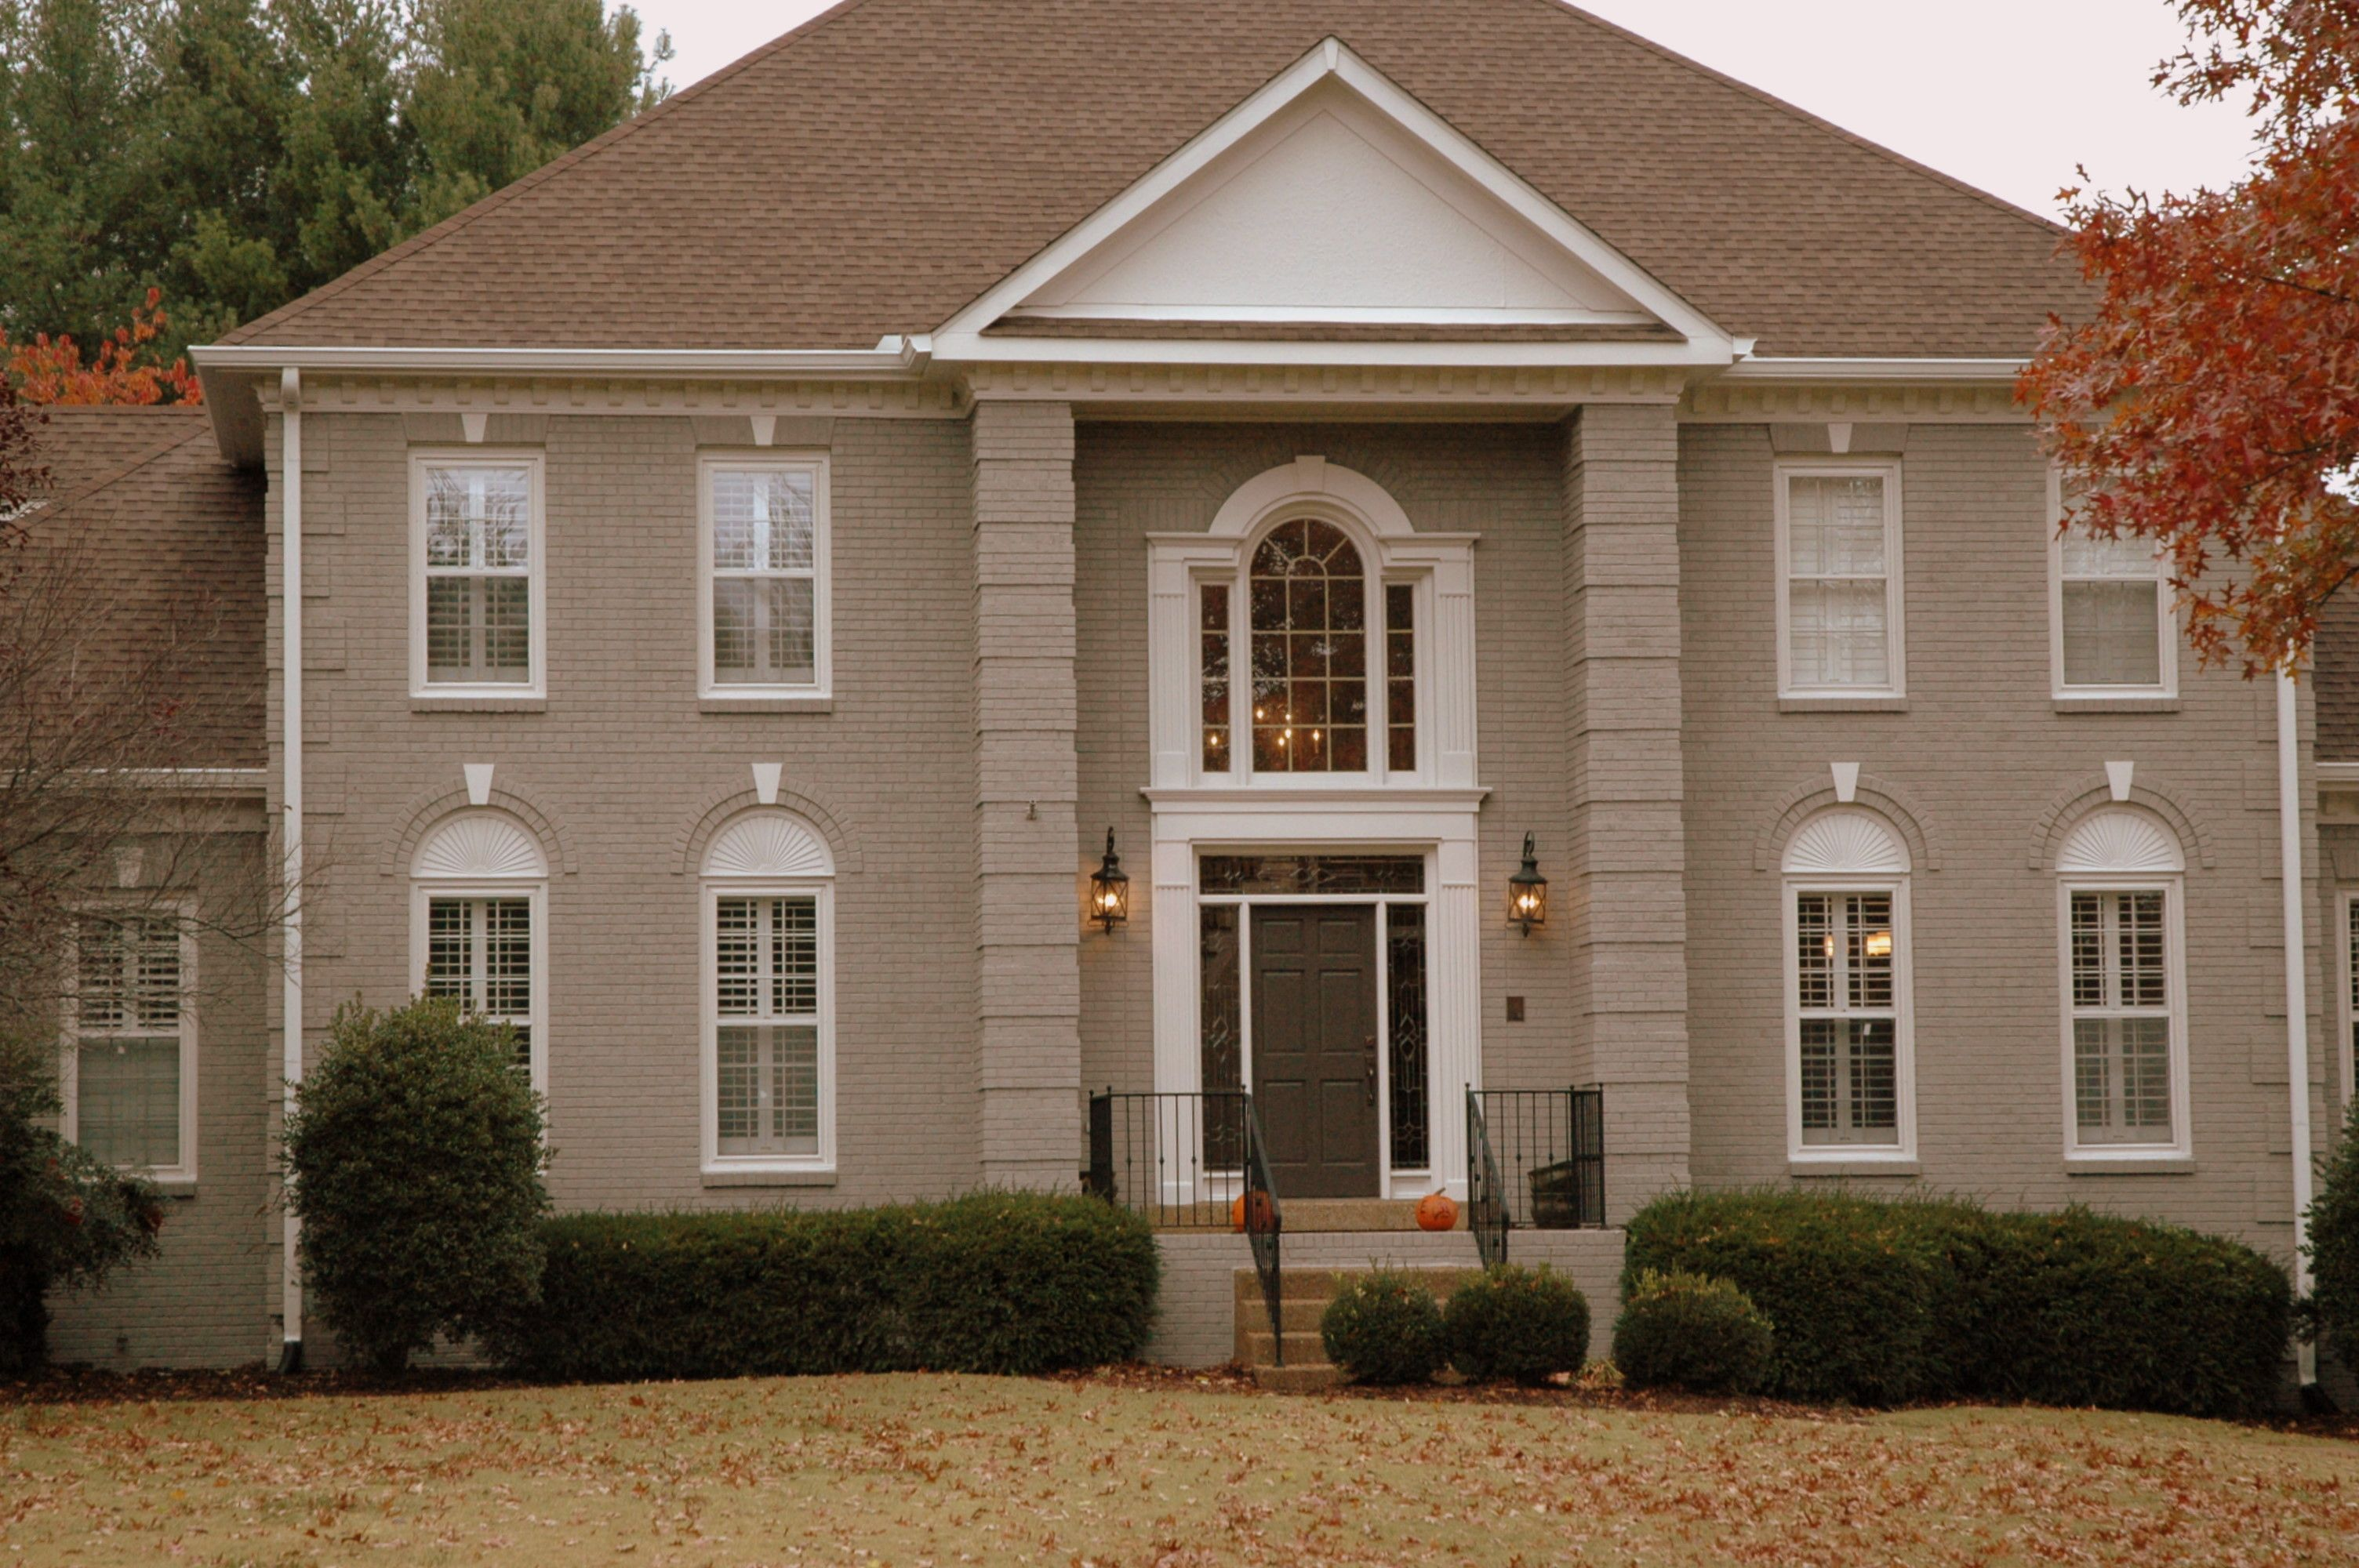 Peachy Painted Brick Facade Exterior Paint Color With Black Door Largest Home Design Picture Inspirations Pitcheantrous